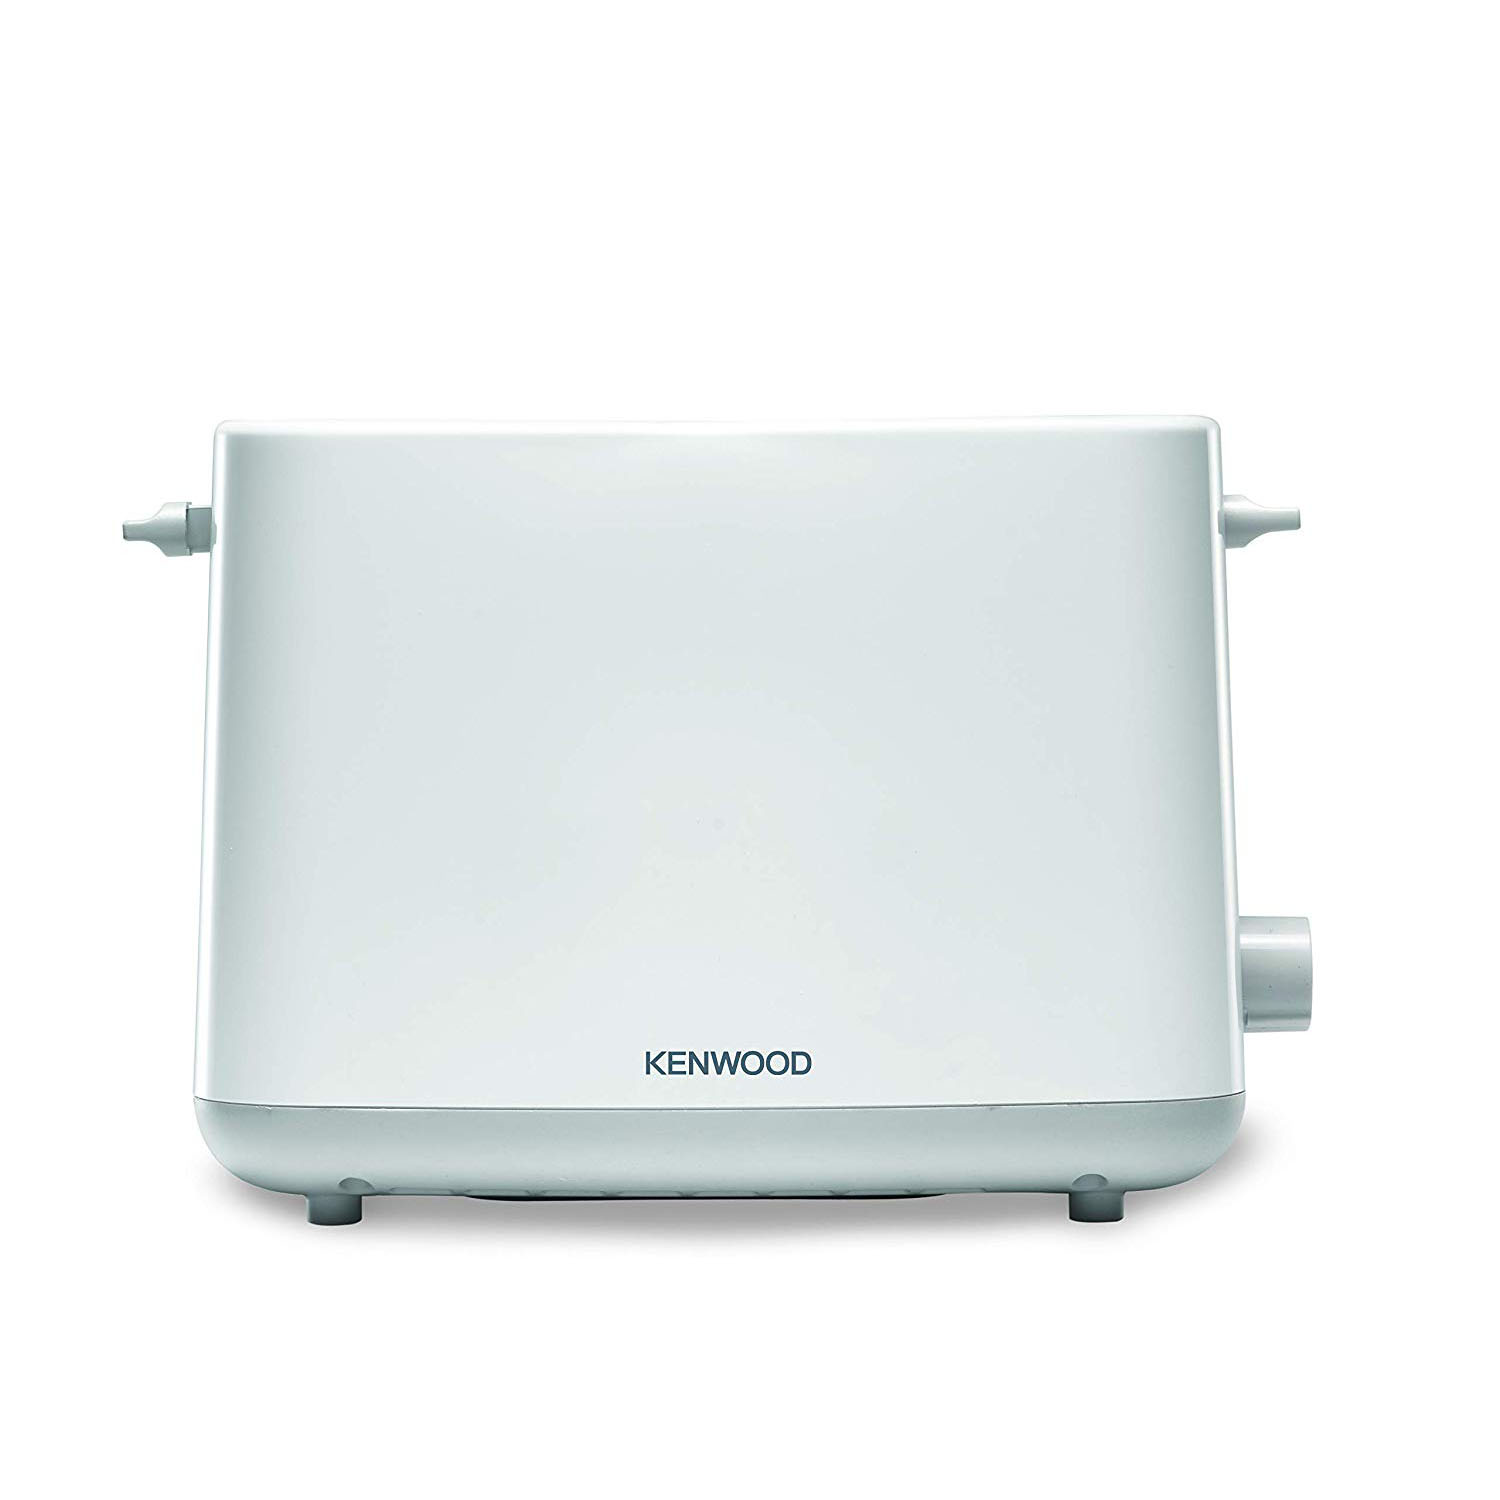 Kenwood TCP01.A0WH 2-Slice Toaster - White